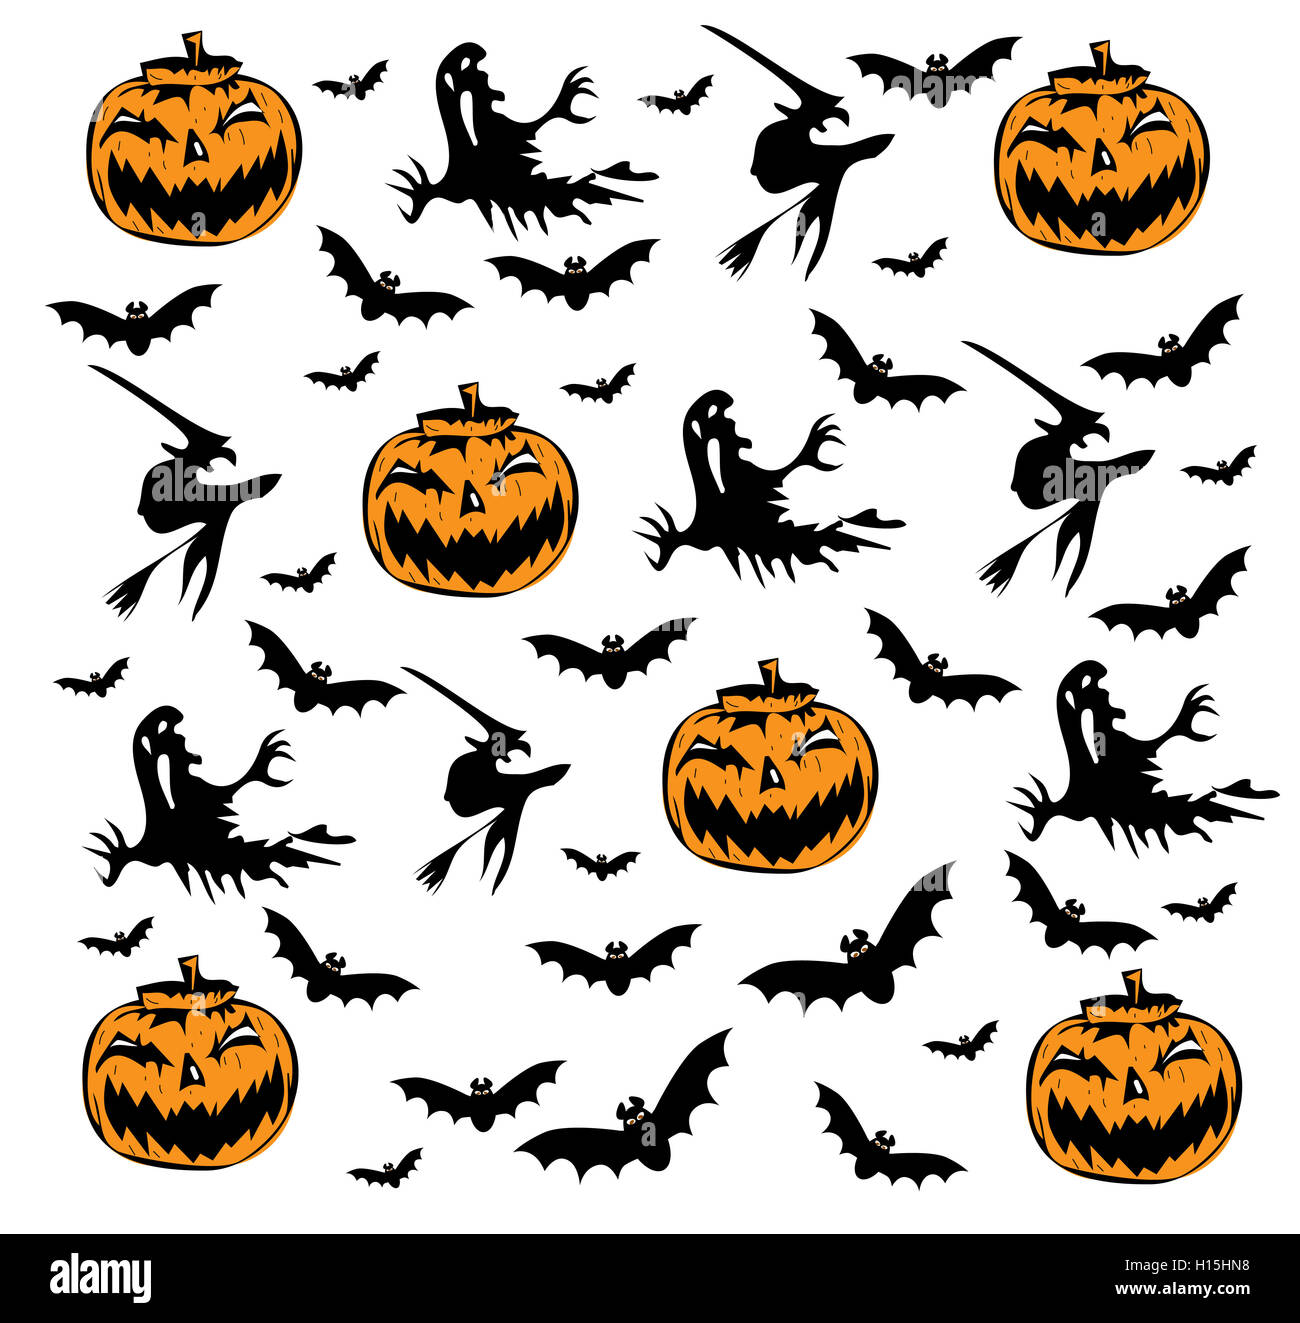 Happy Halloween background with pumpkin icons Stock Photo, Royalty ...